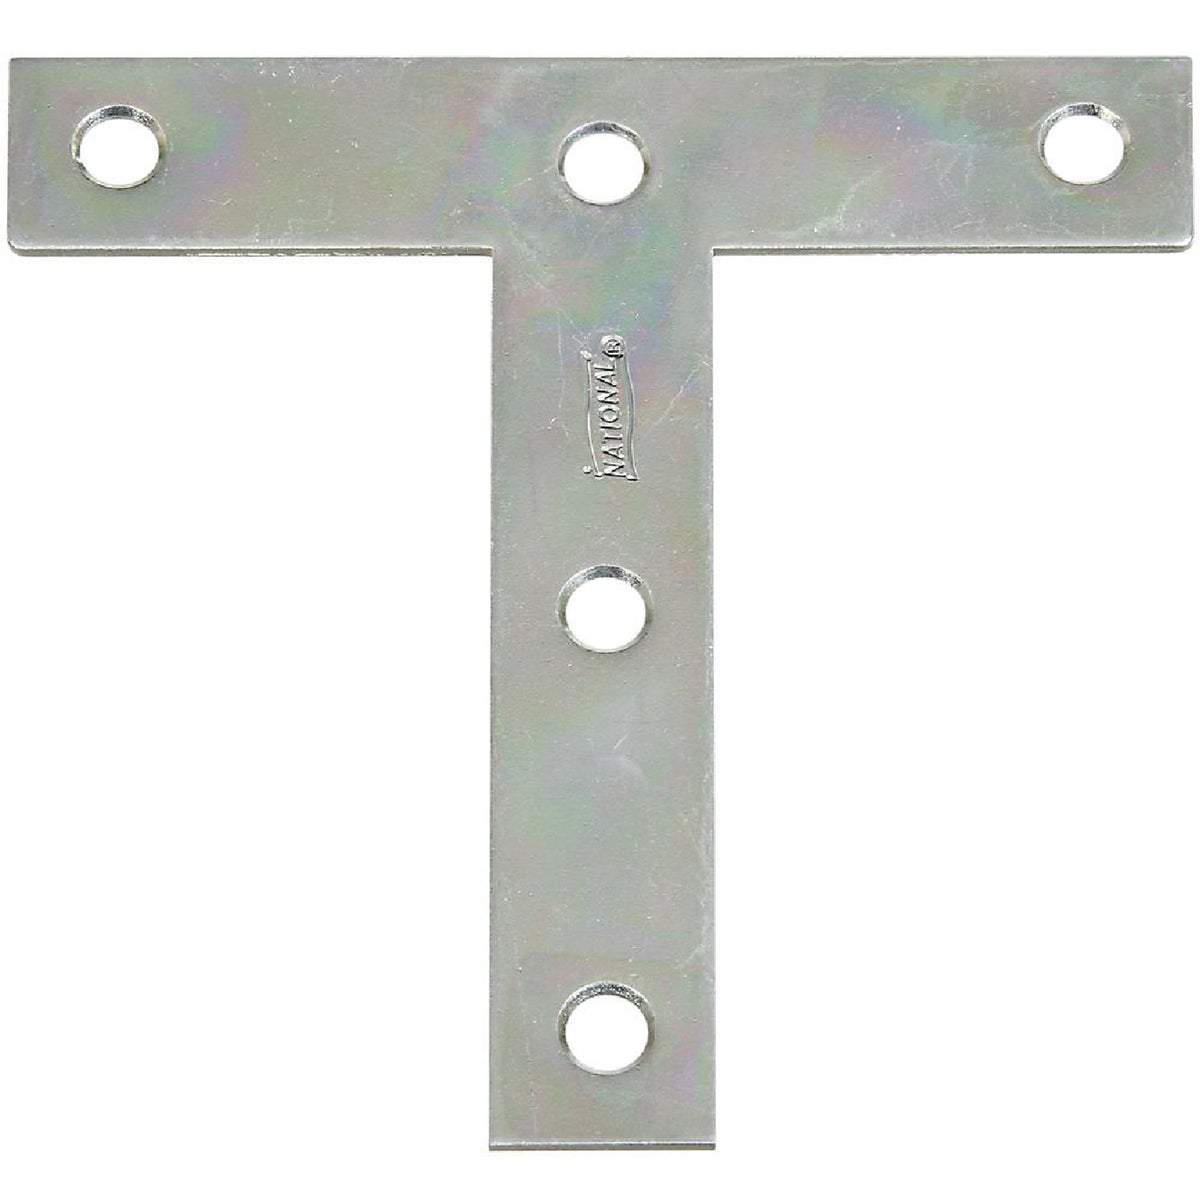 4X4 T-PLATE - N113753 by National Mfg Co